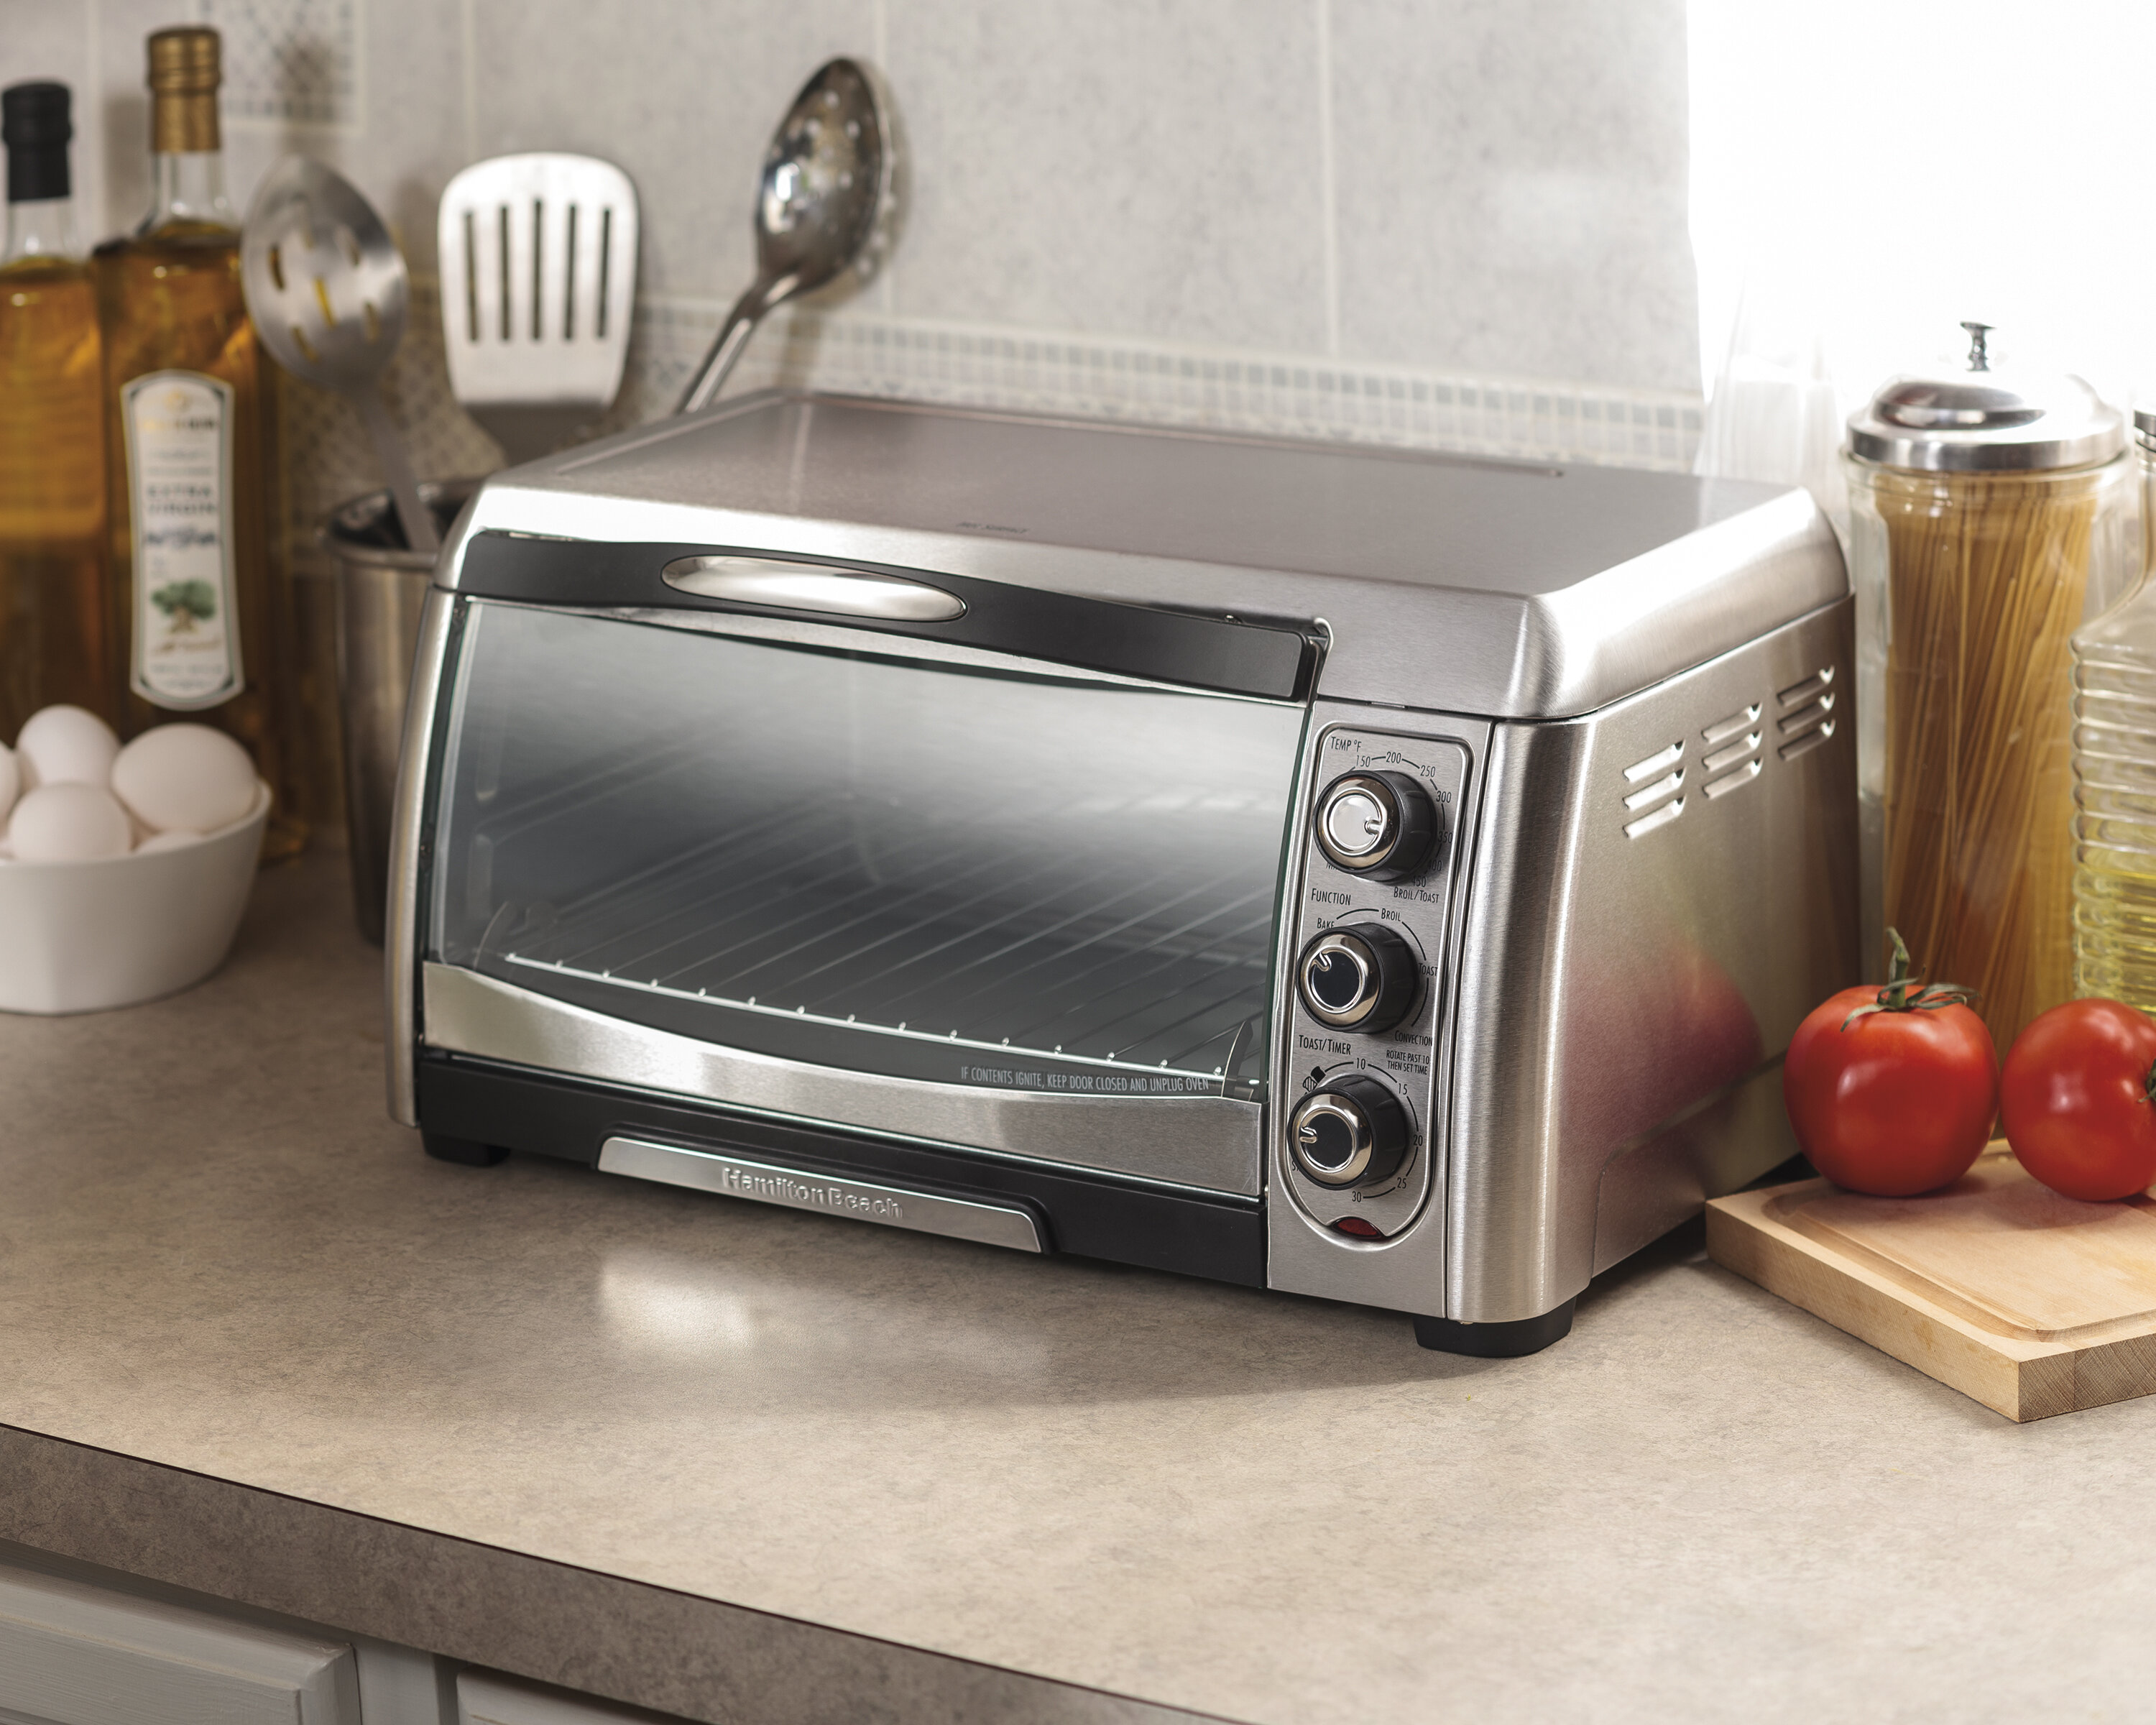 w toa by oven kitchens everything light over toaster air cuisinart and fryer